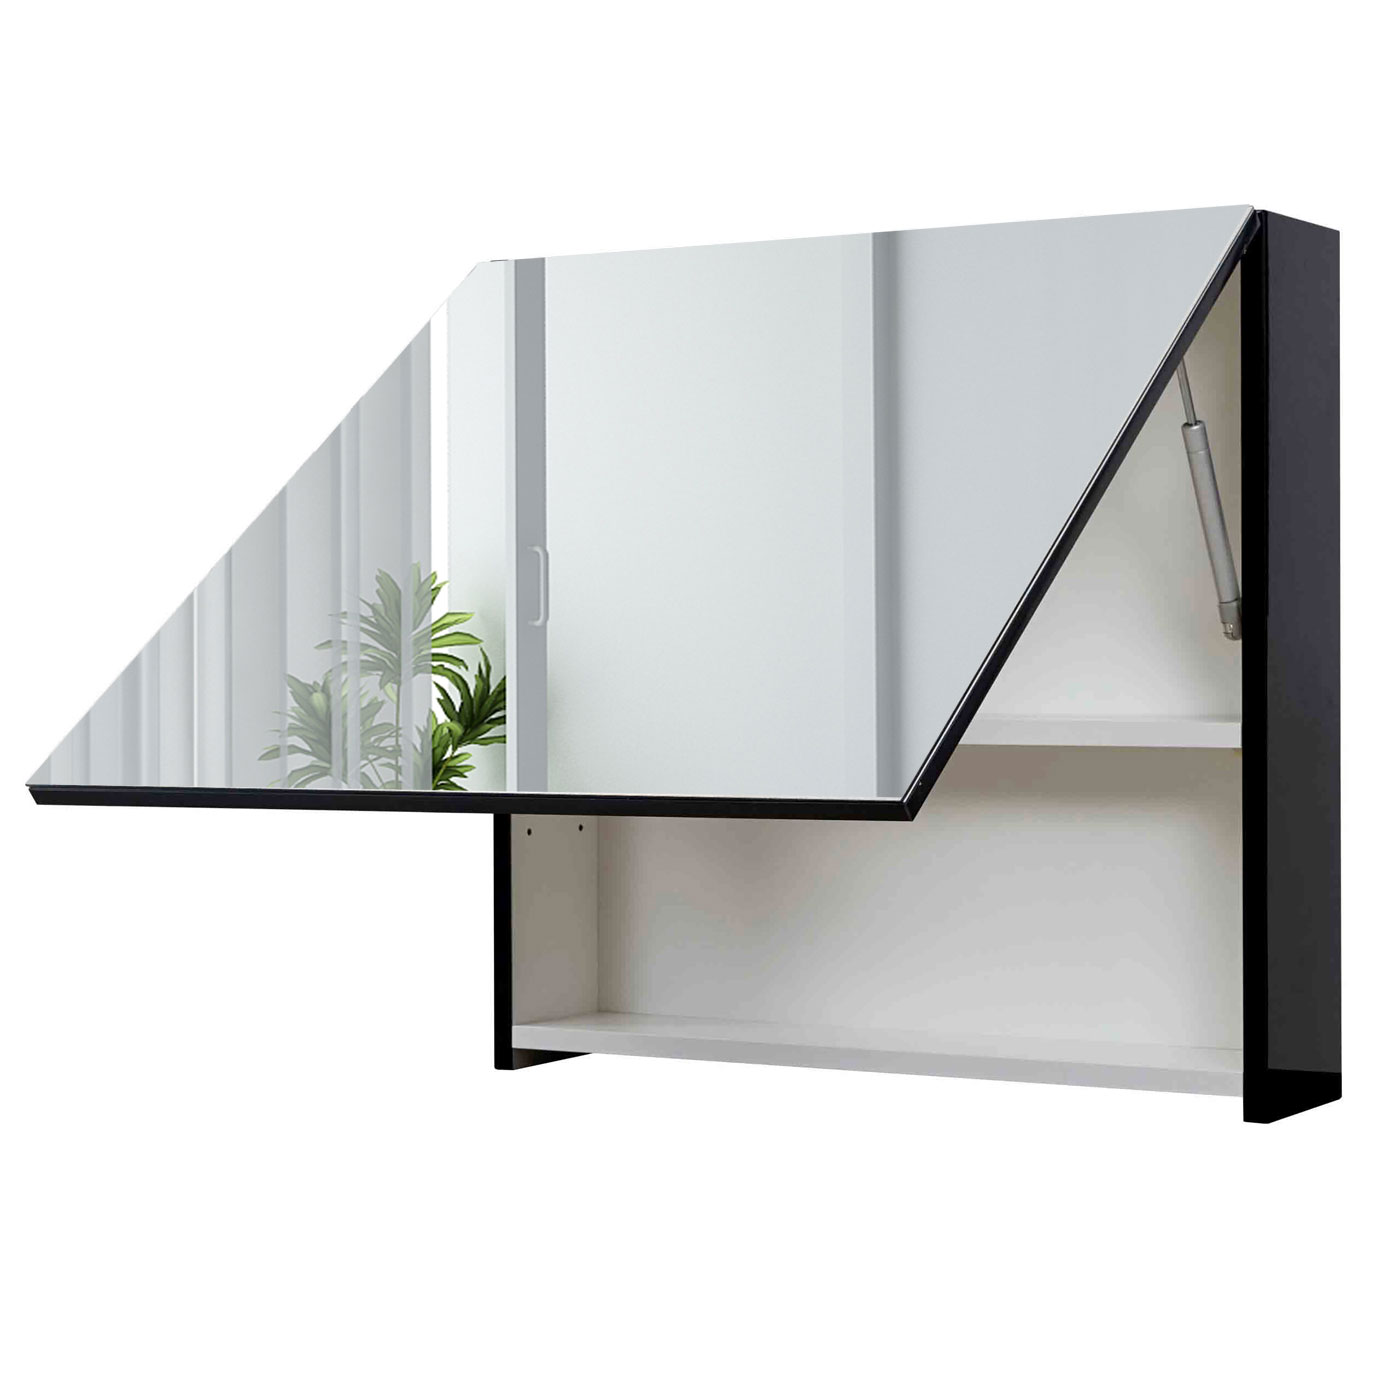 spiegelschrank hwc c11 wandspiegel badspiegel badezimmer aufklappbar hochglanz ebay. Black Bedroom Furniture Sets. Home Design Ideas